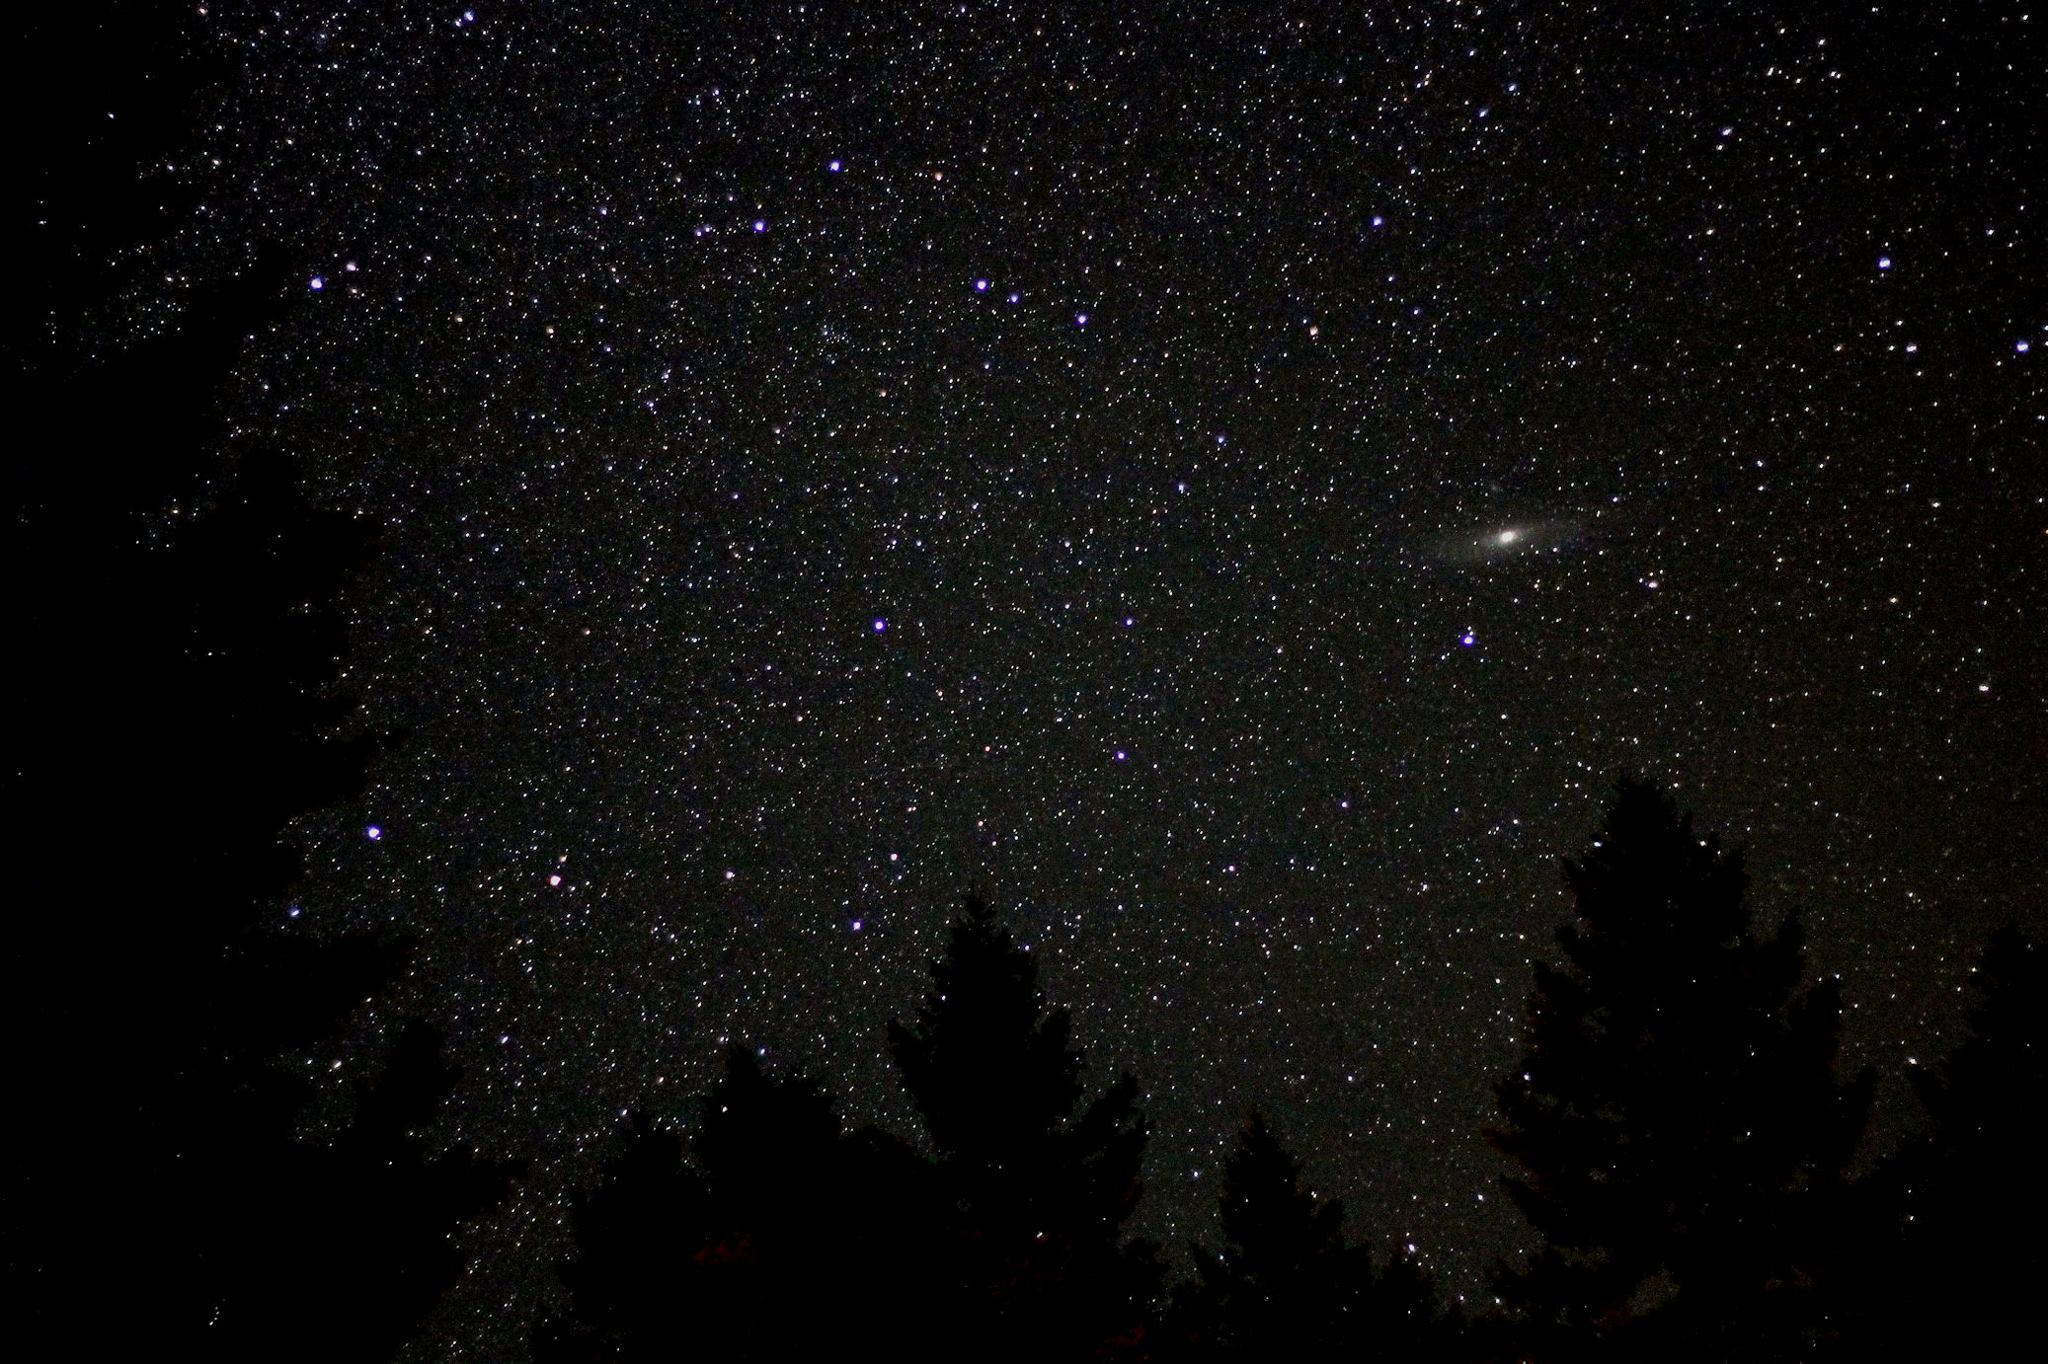 Dense star field containing oblong light streak with bright center, above sihouetted pine trees.